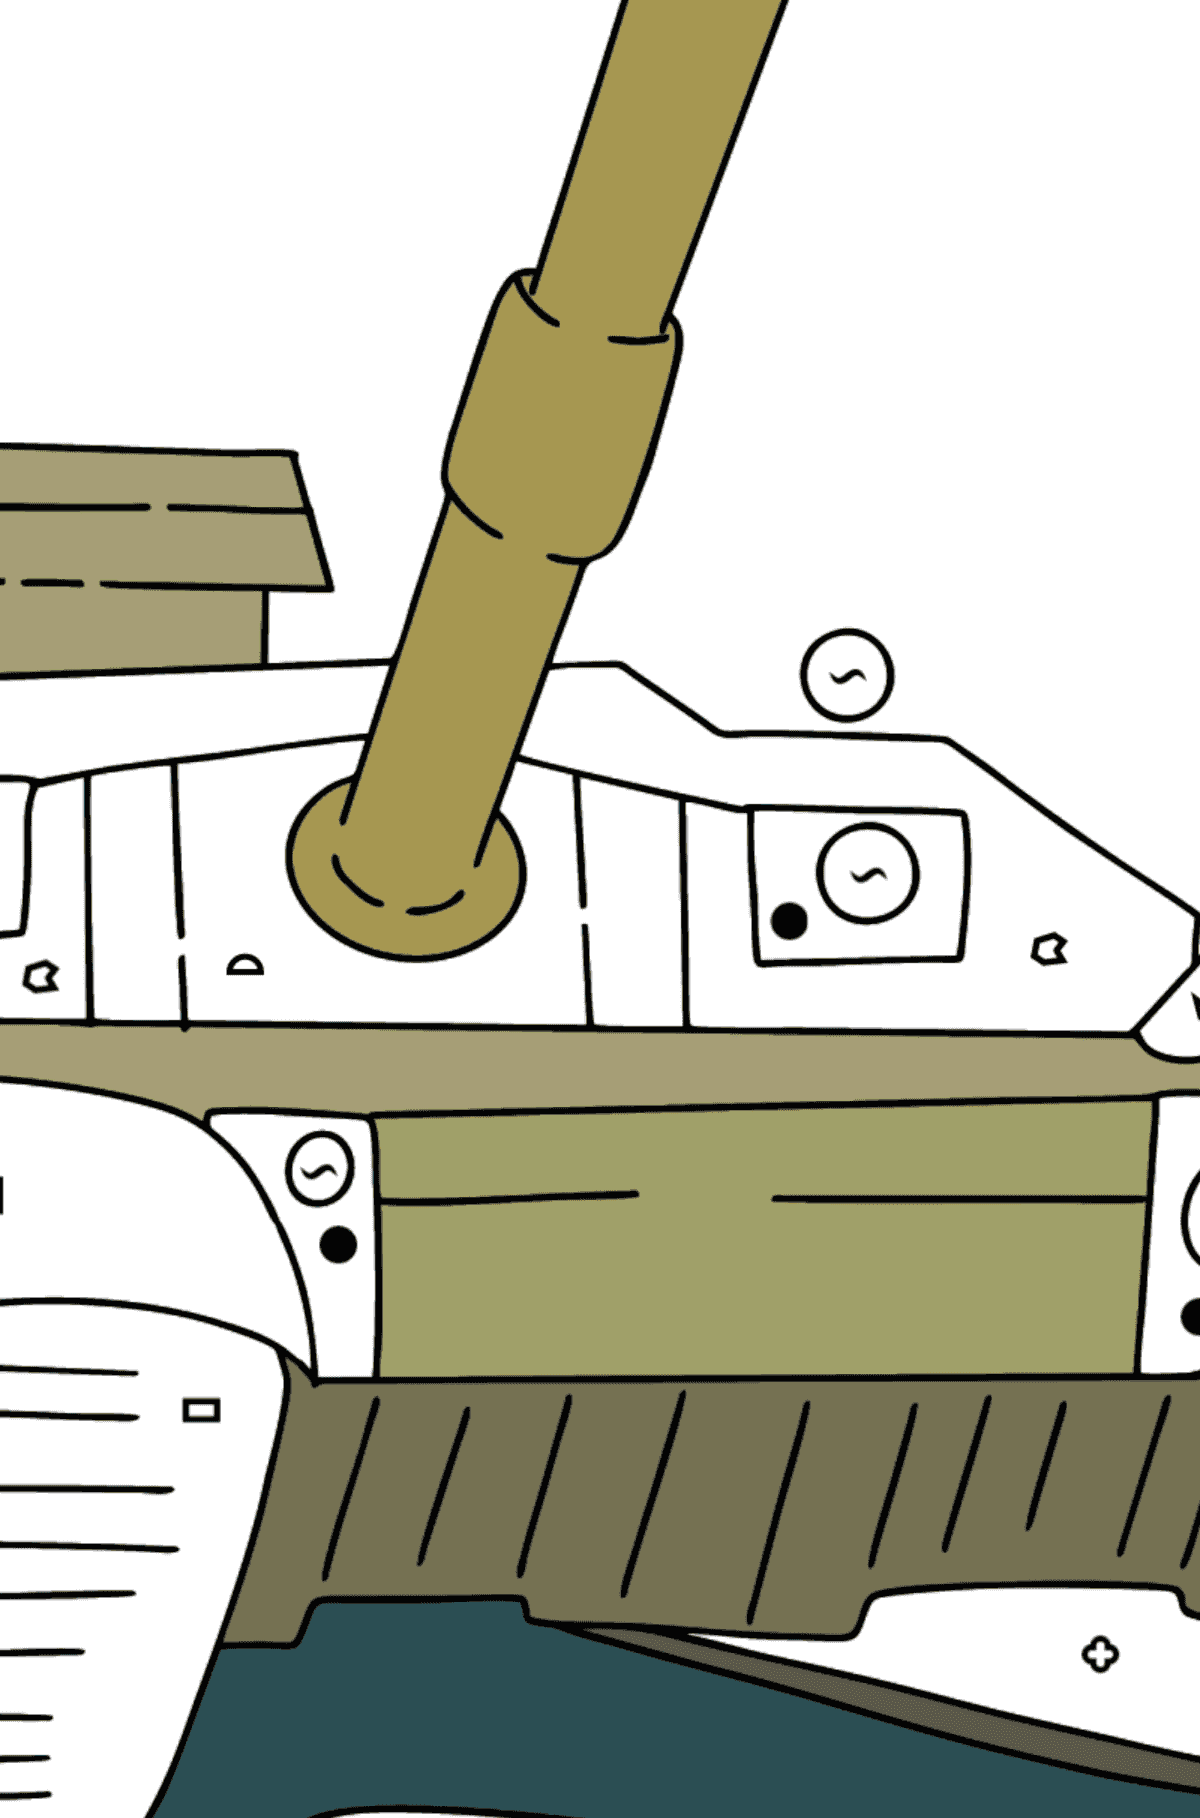 Tank T 90 coloring page - Coloring by Symbols and Geometric Shapes for Kids